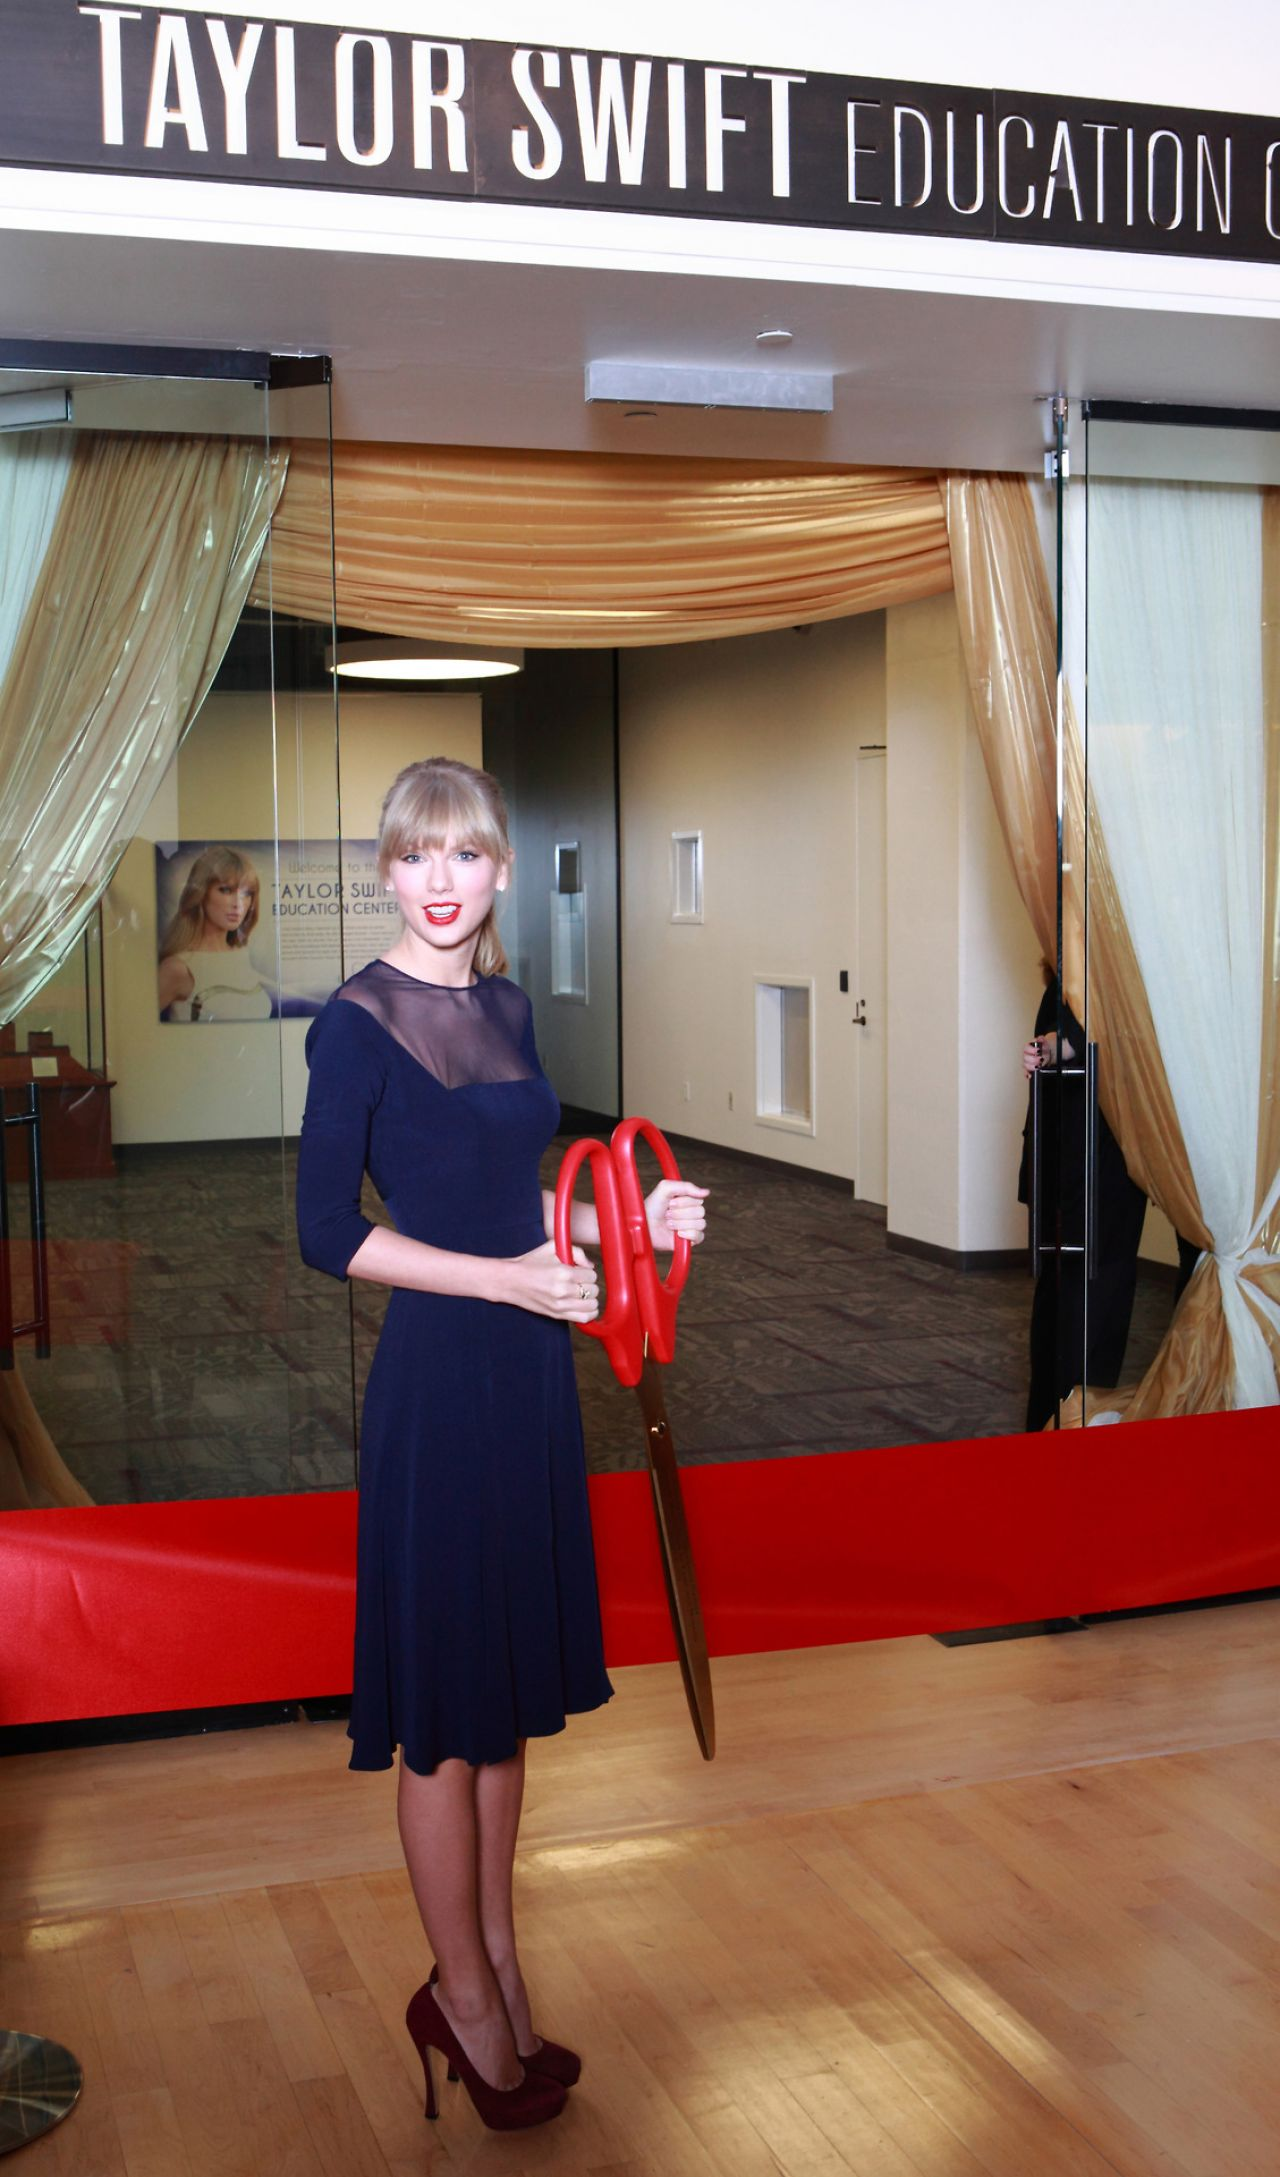 Taylor Swift at Opening of the Taylor Swift Education Center in Nashville